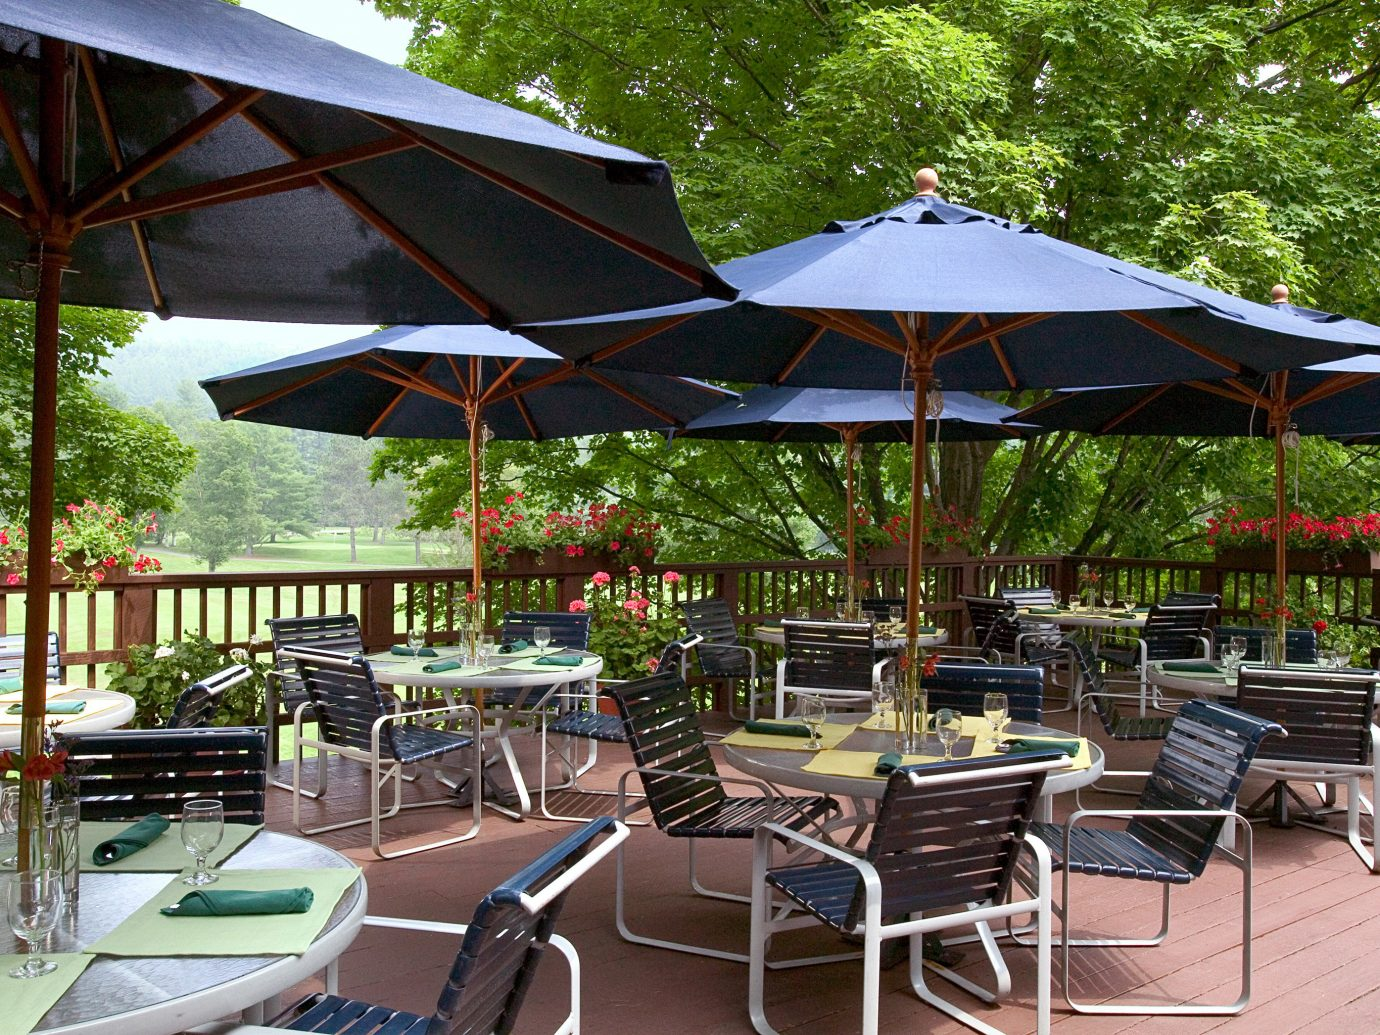 Country Deck Drink Eat Inn Patio Resort Trip Ideas tree table umbrella outdoor chair leisure tent Dining lawn canopy set restaurant outdoor structure area furniture shade several